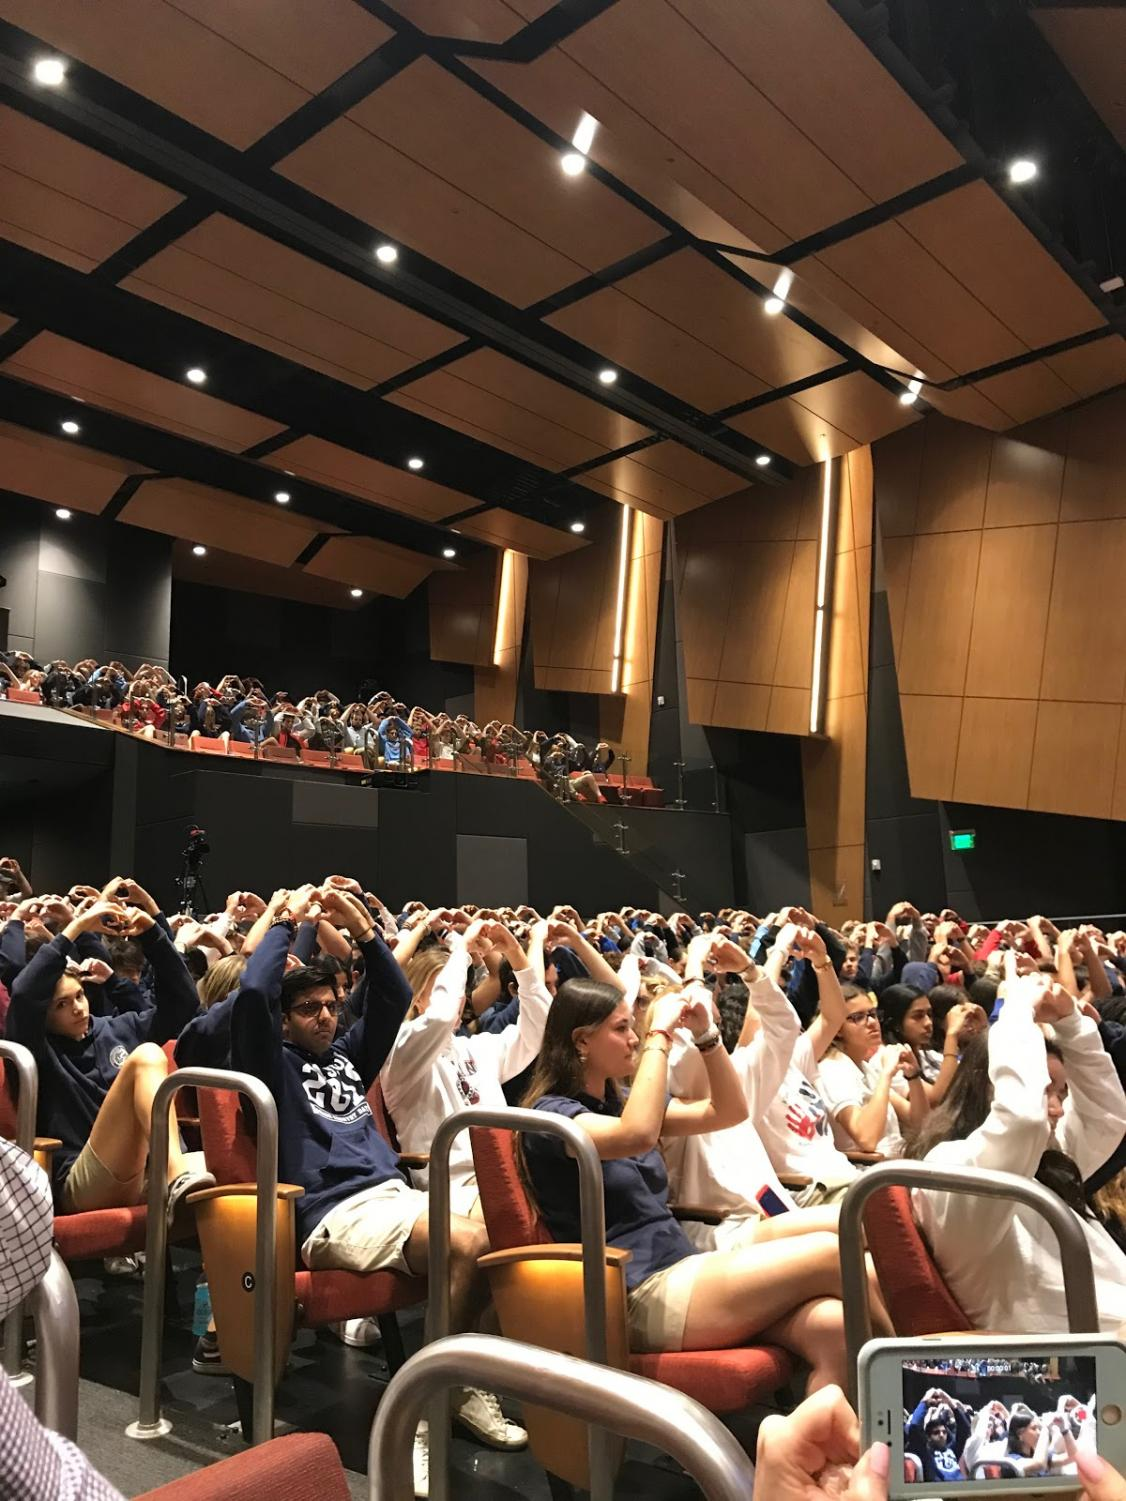 During a MOSS assembly, students raise their arms to give support to the 17 lives lost during the Parkland shooting.